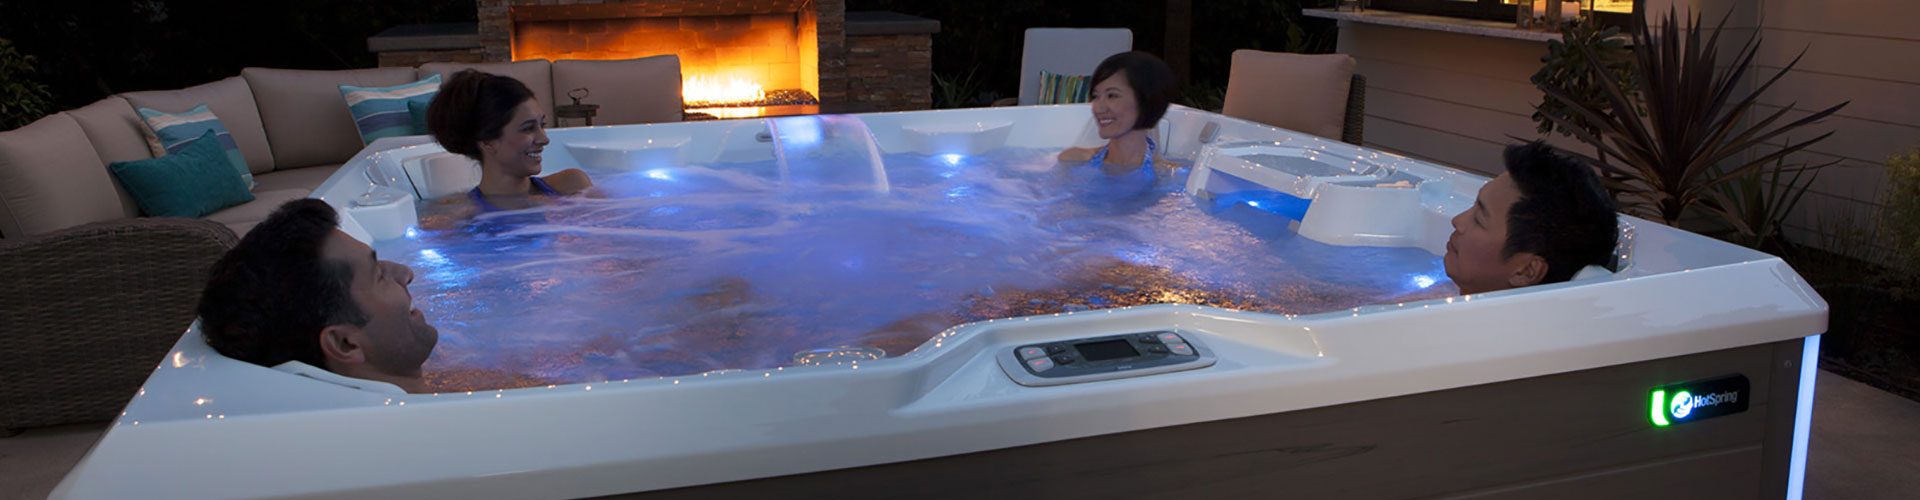 Soak Your Way to Happiness in a Portable Spa, Hot Tub Store Milwaukee